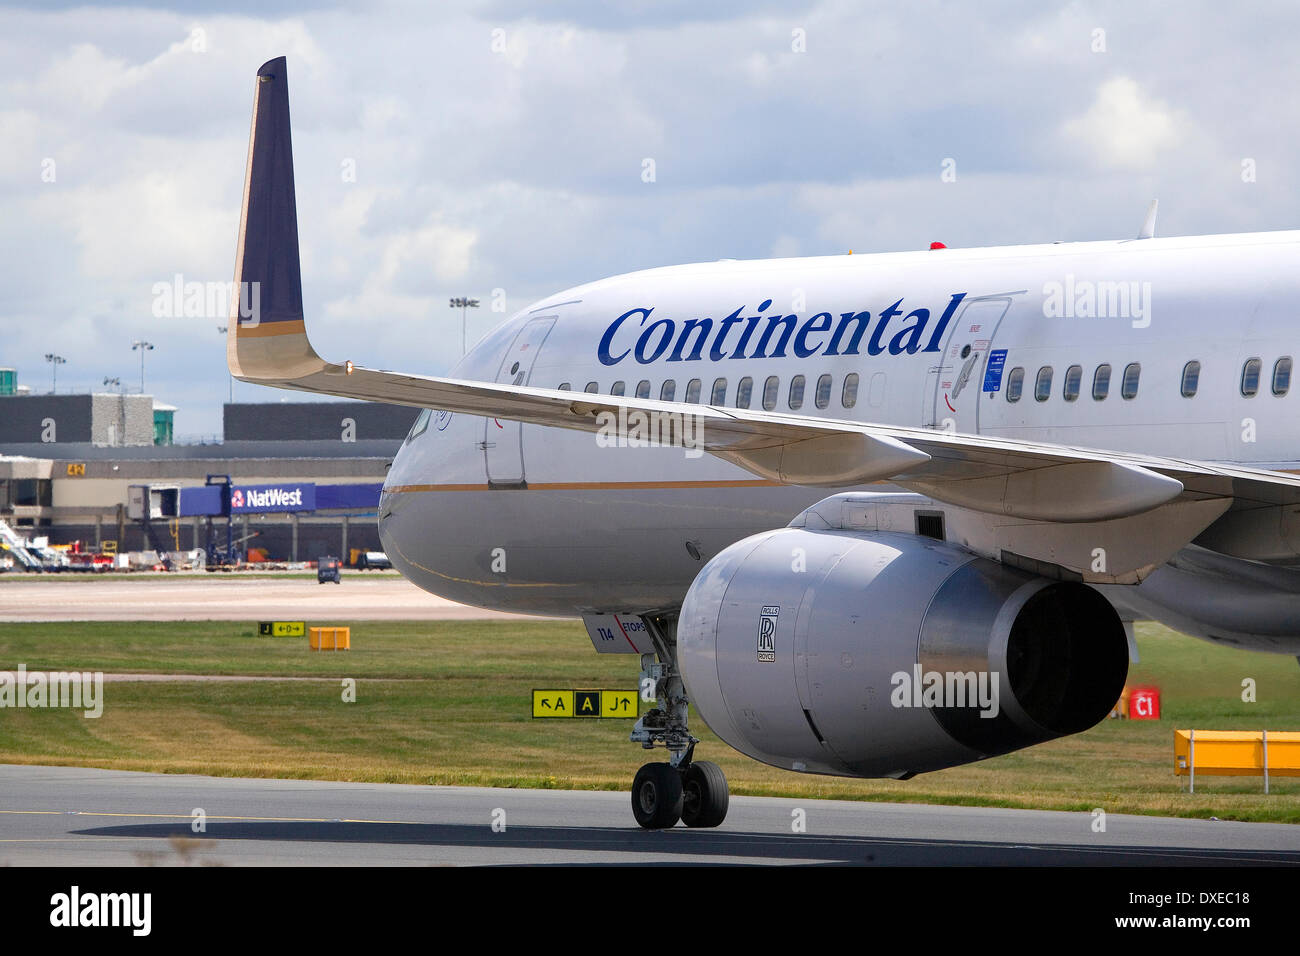 A Continental airlines boeing757 taxi-ing at Manchester airport after landing. - Stock Image